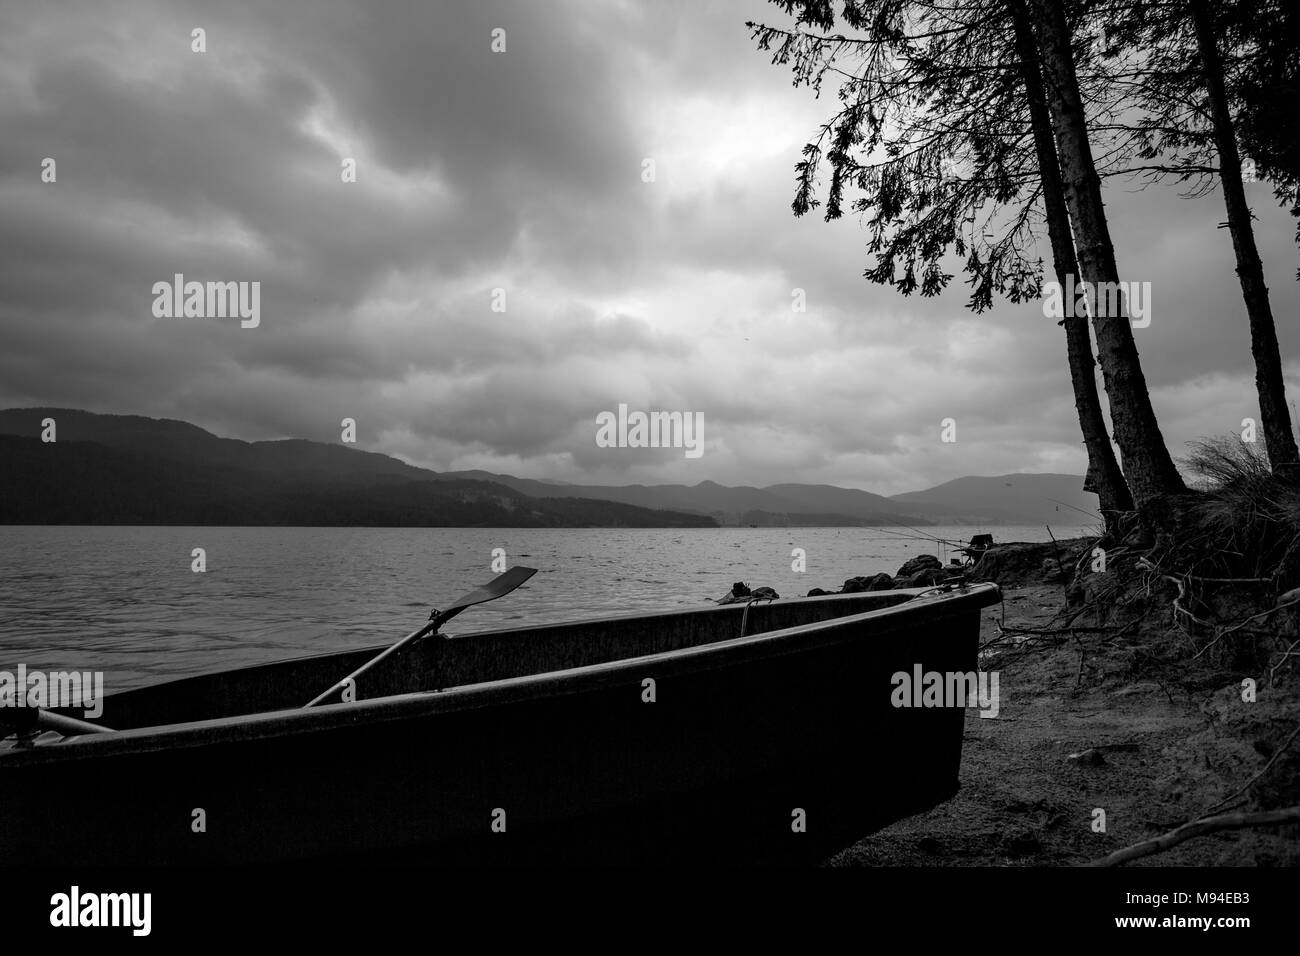 Small fishing boat silhouette at the shore with partial pines in cloudy dark rainy morning at lake Dospat, Rhodope mountain, Bulgaria Stock Photo